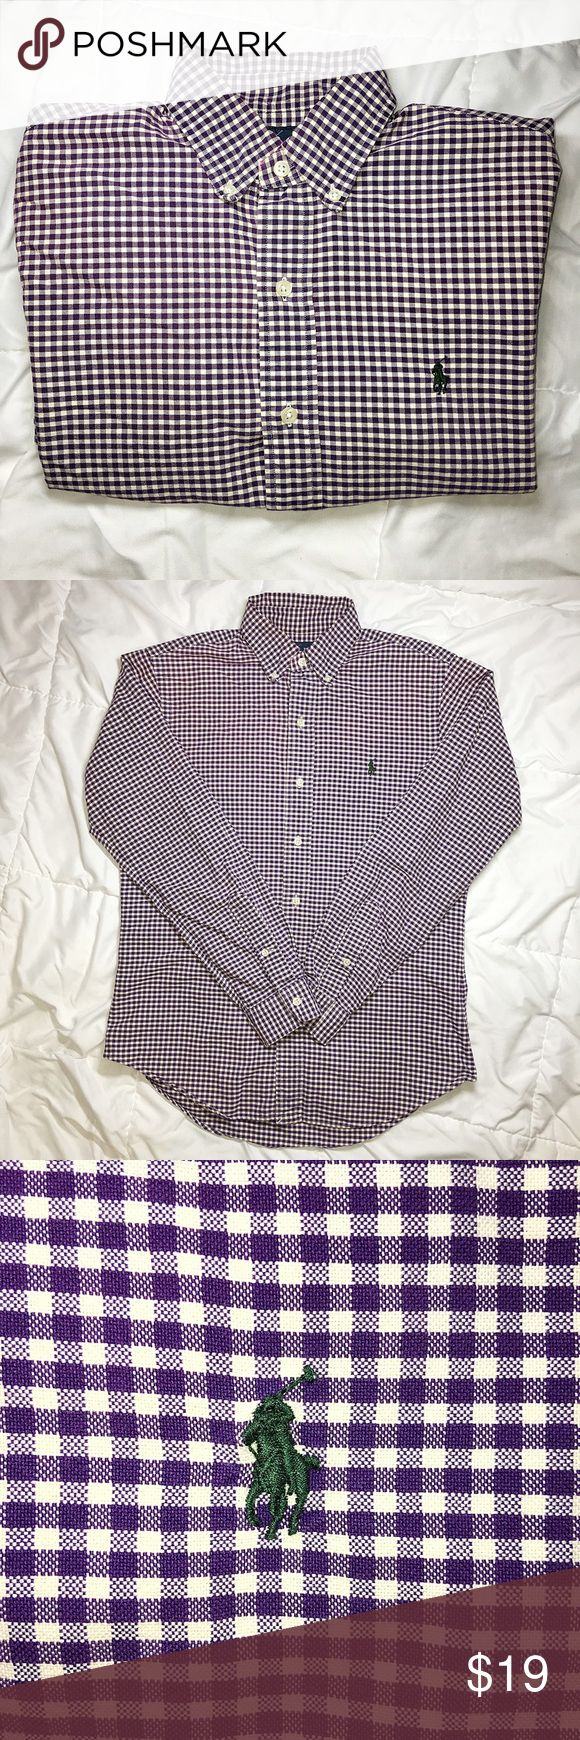 Men's Polo Ralph Lauren Plaid Button Down Purple/off-white. Green horse. Ralph Lauren labeling through-out. Purchased from Ralph Lauren Factory Store. (Great condition) Polo by Ralph Lauren Shirts Casual Button Down Shirts